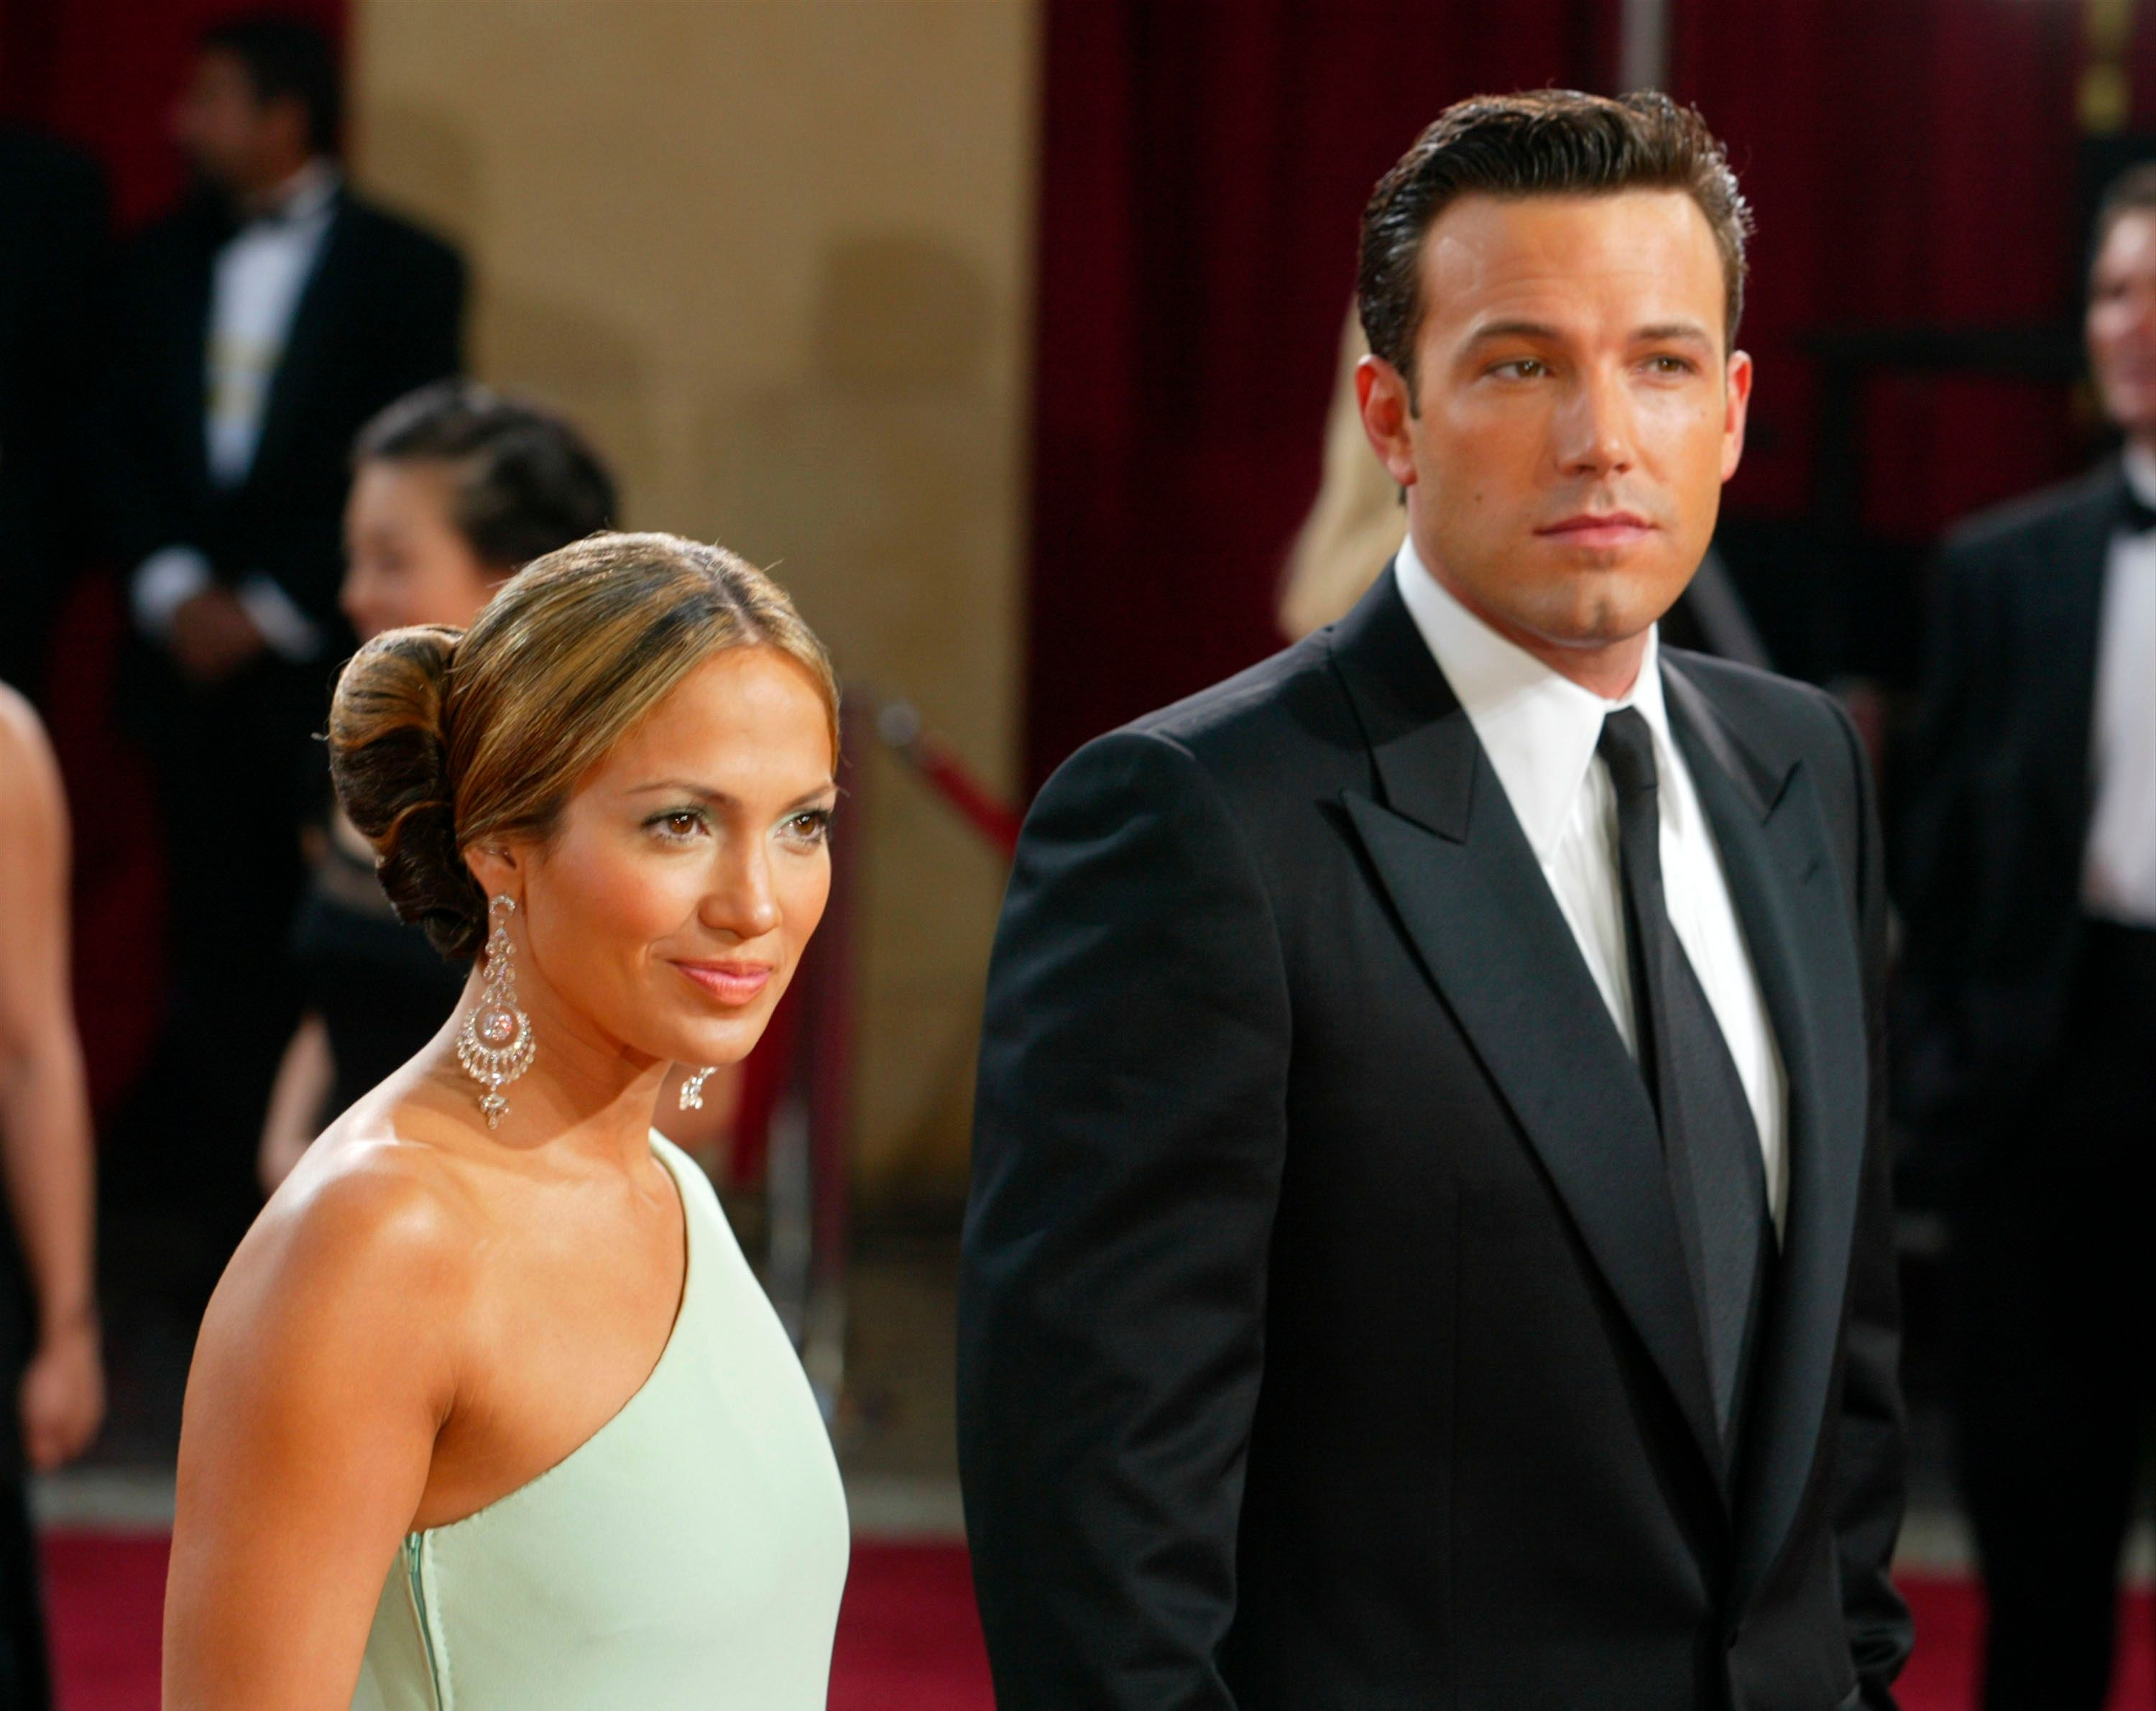 Ben Affleck and Jennifer Lopez at the 75th Annual Academy Awards at the Kodak Theater on March 23, 2003 | Photo: Getty Images